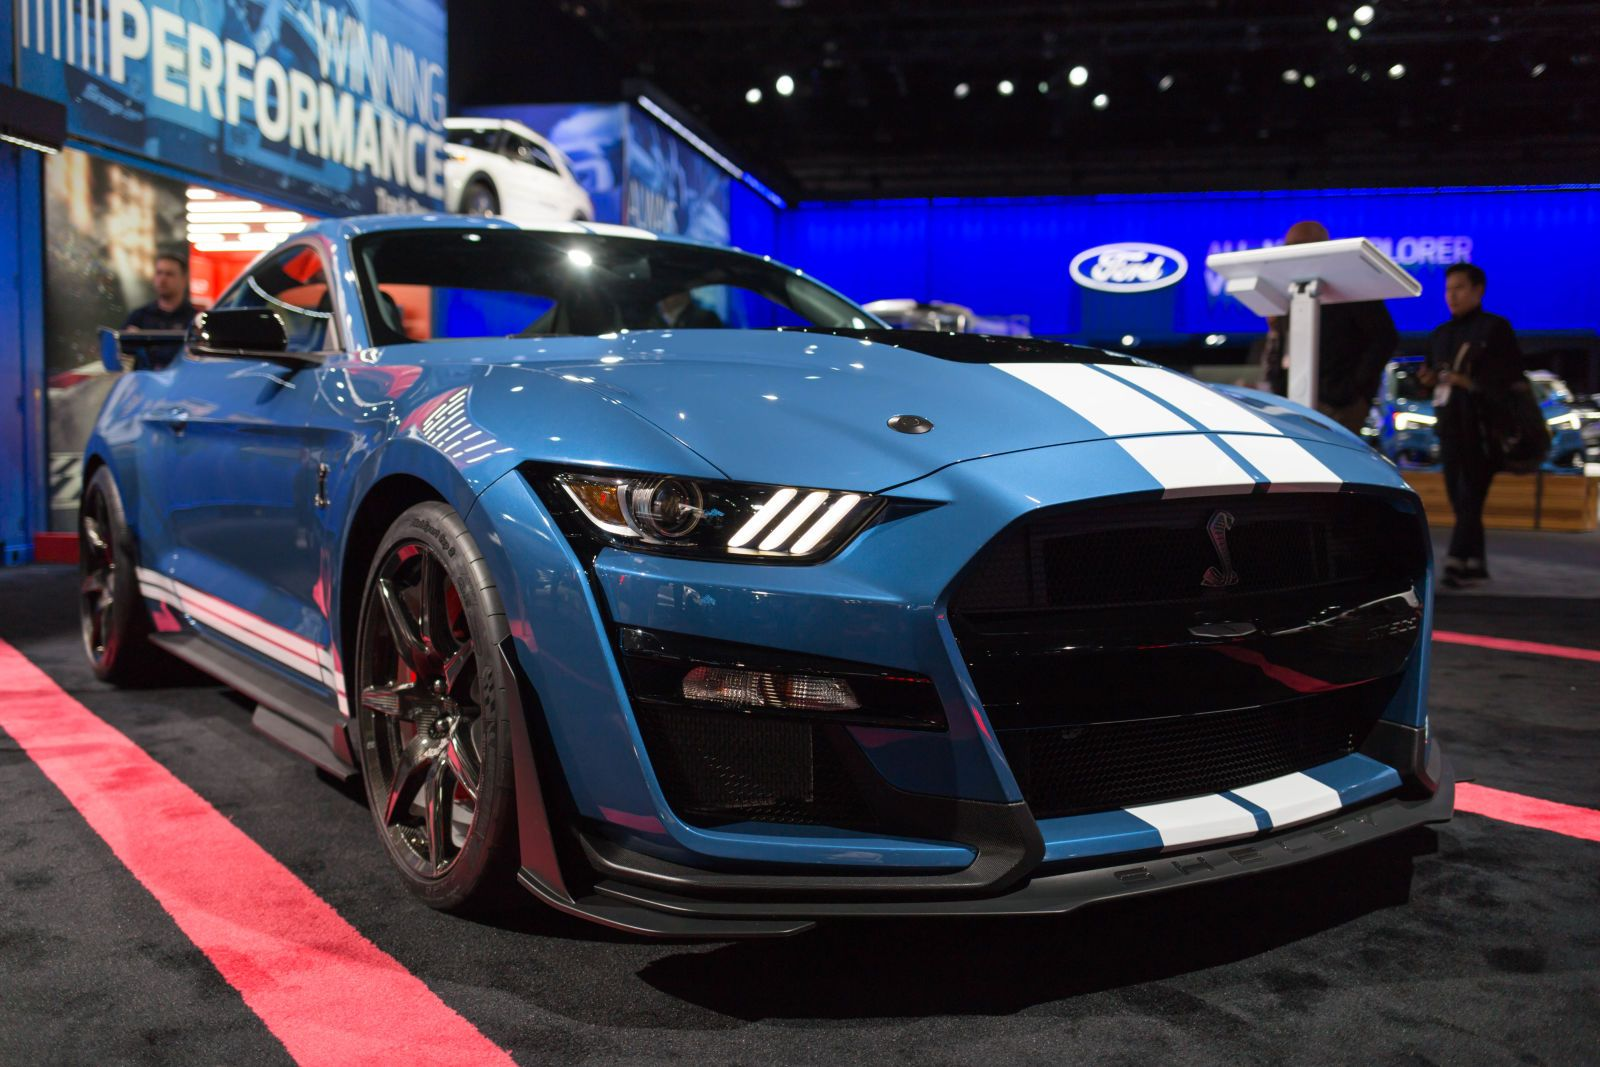 Twelve Badass Details On The 2020 Ford Mustang Shelby Gt500 Ford